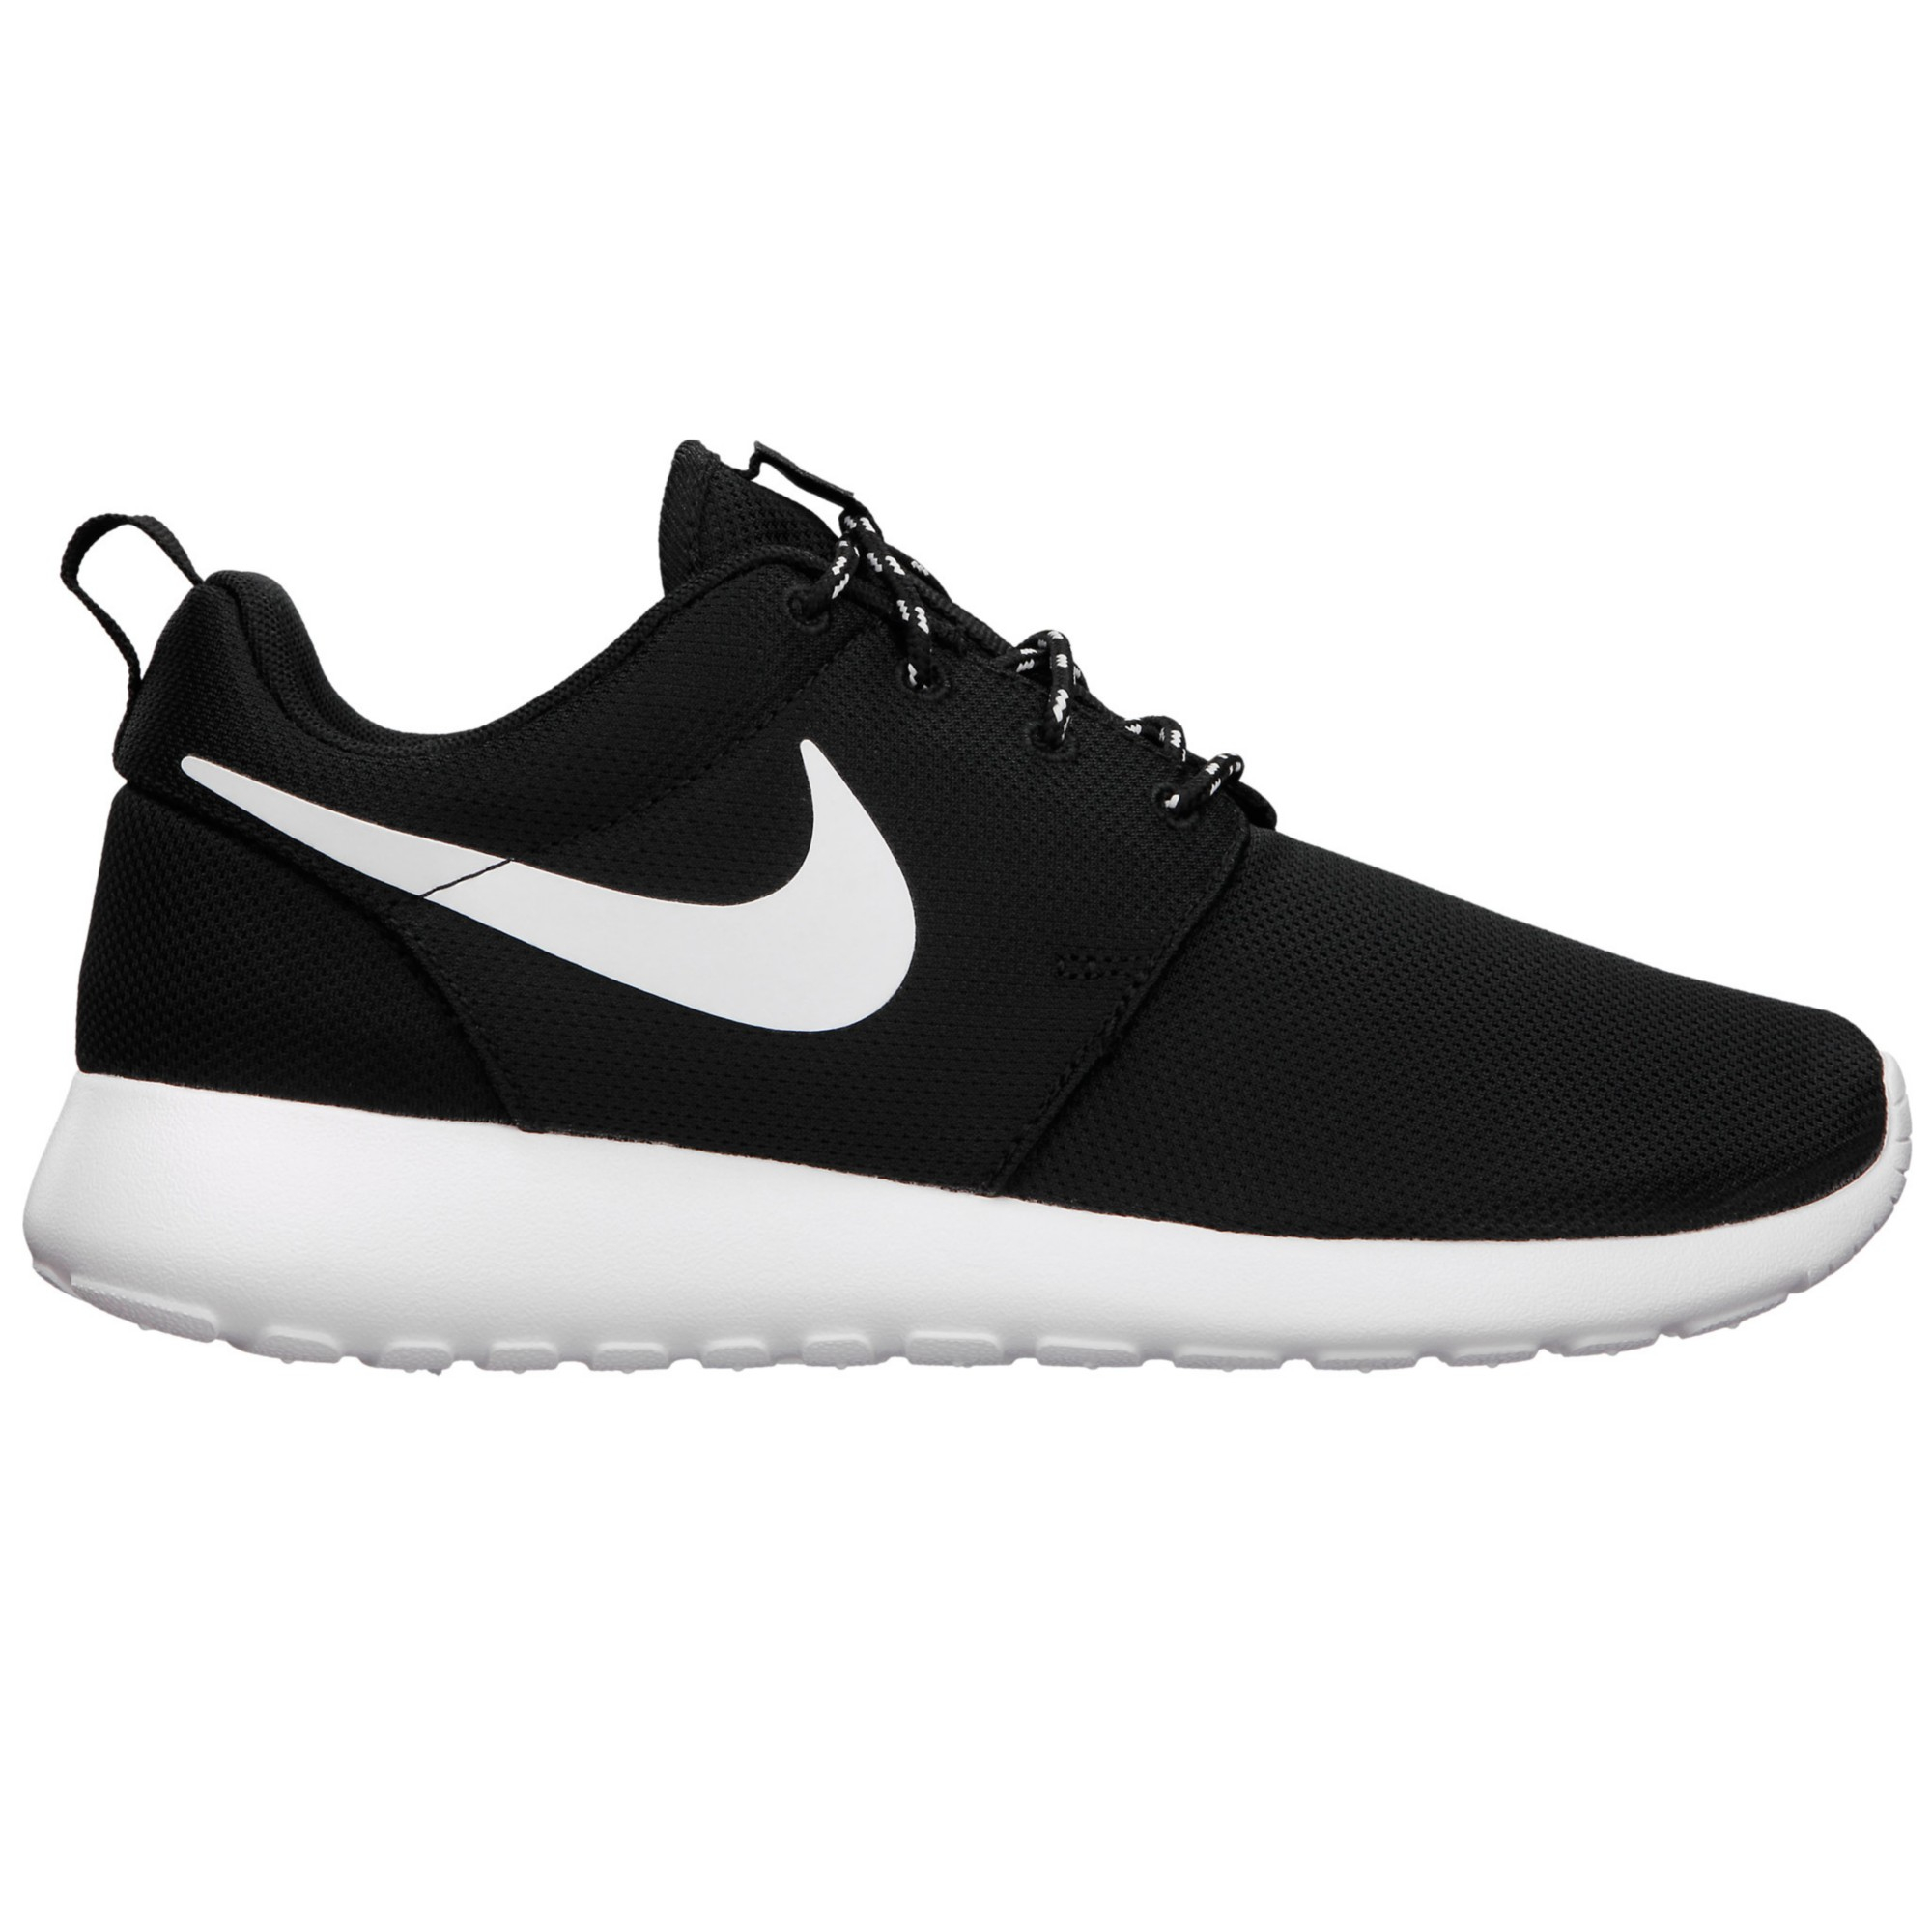 Nike Roshe Run Womens Shoes in Black | Lyst